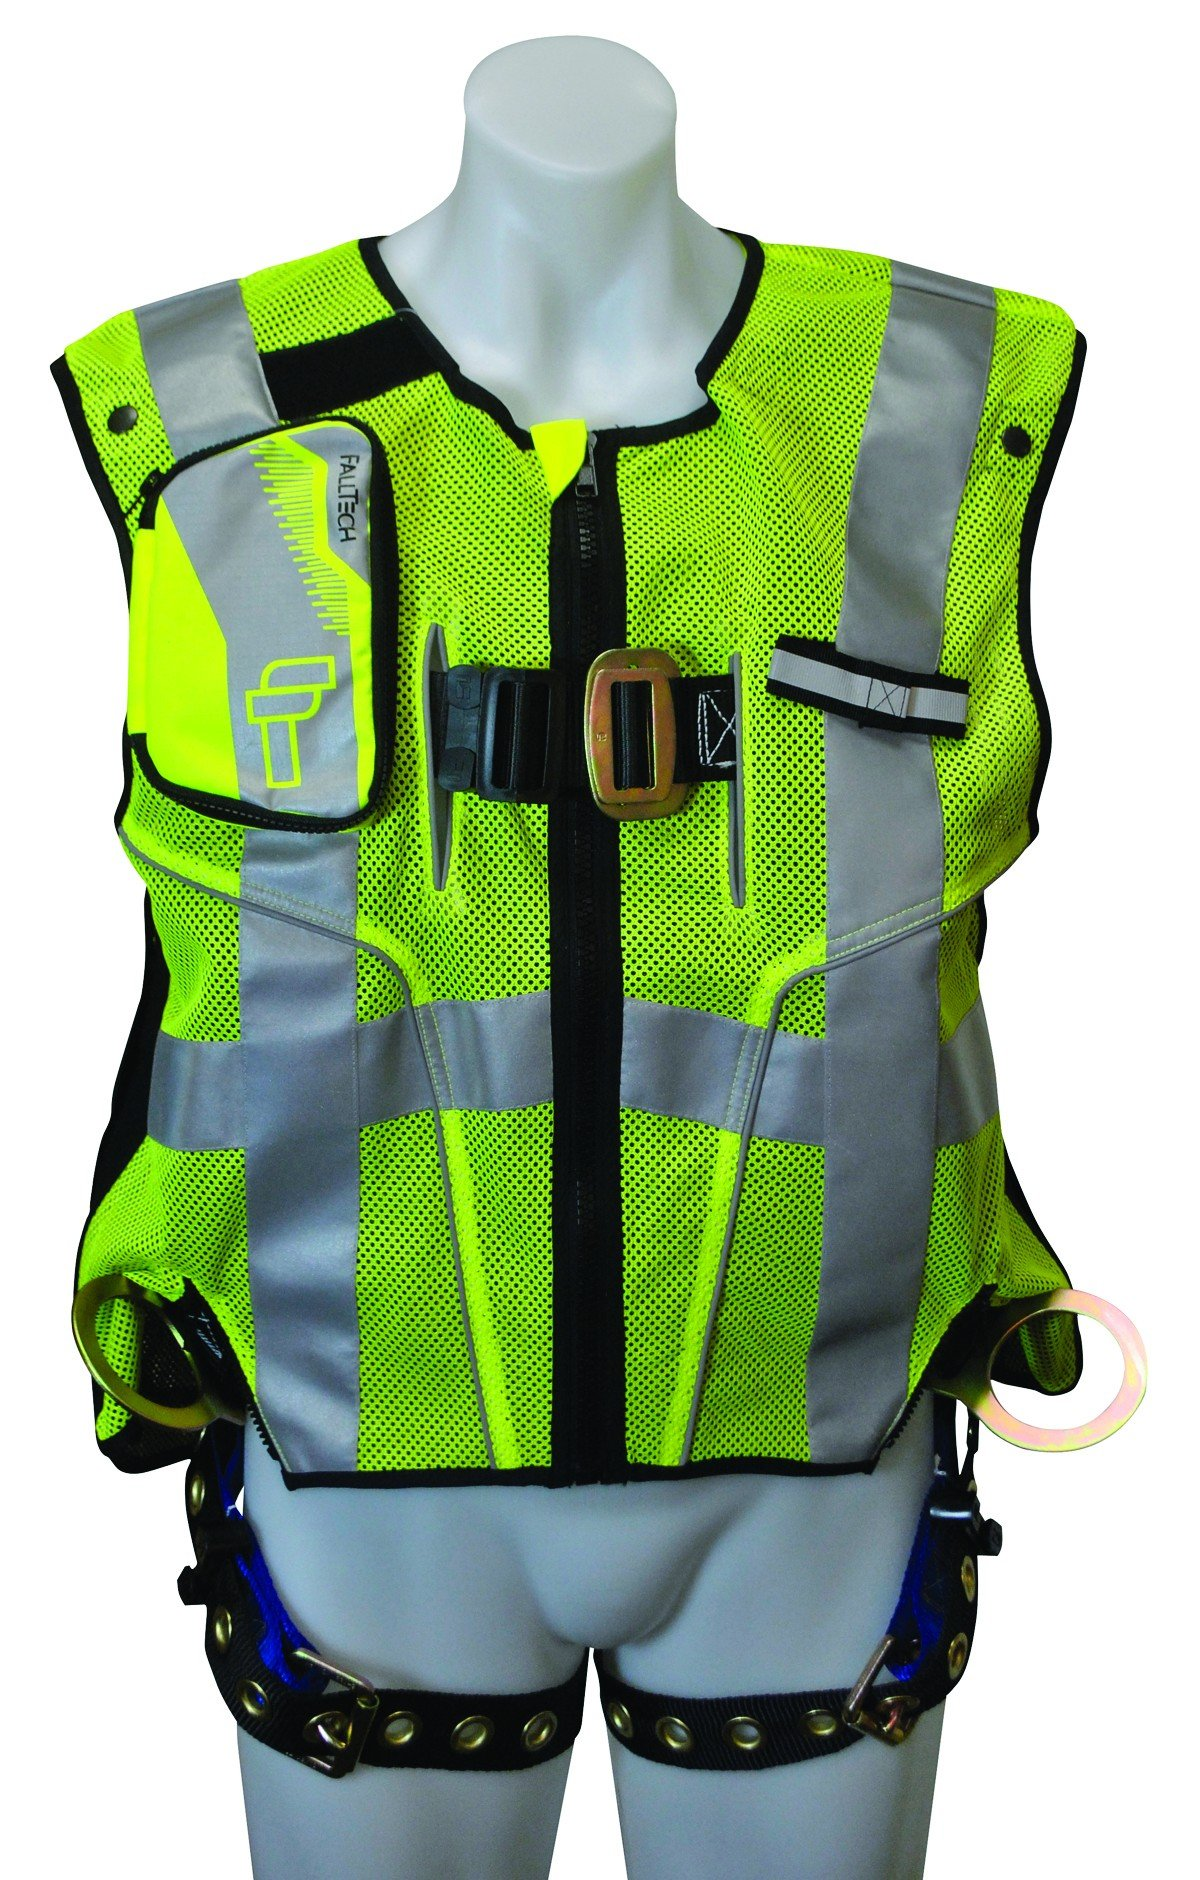 FallTech 7018LXL Hi-Vis Vest Harness, Non-Belted FBH - 3 D-Rings, Back and Side, Tongue Buckle Legs and Mating Buckle Chest, Class 2 Vest, Lime, Large/X-Large, Lime/Blue by FallTech (Image #1)